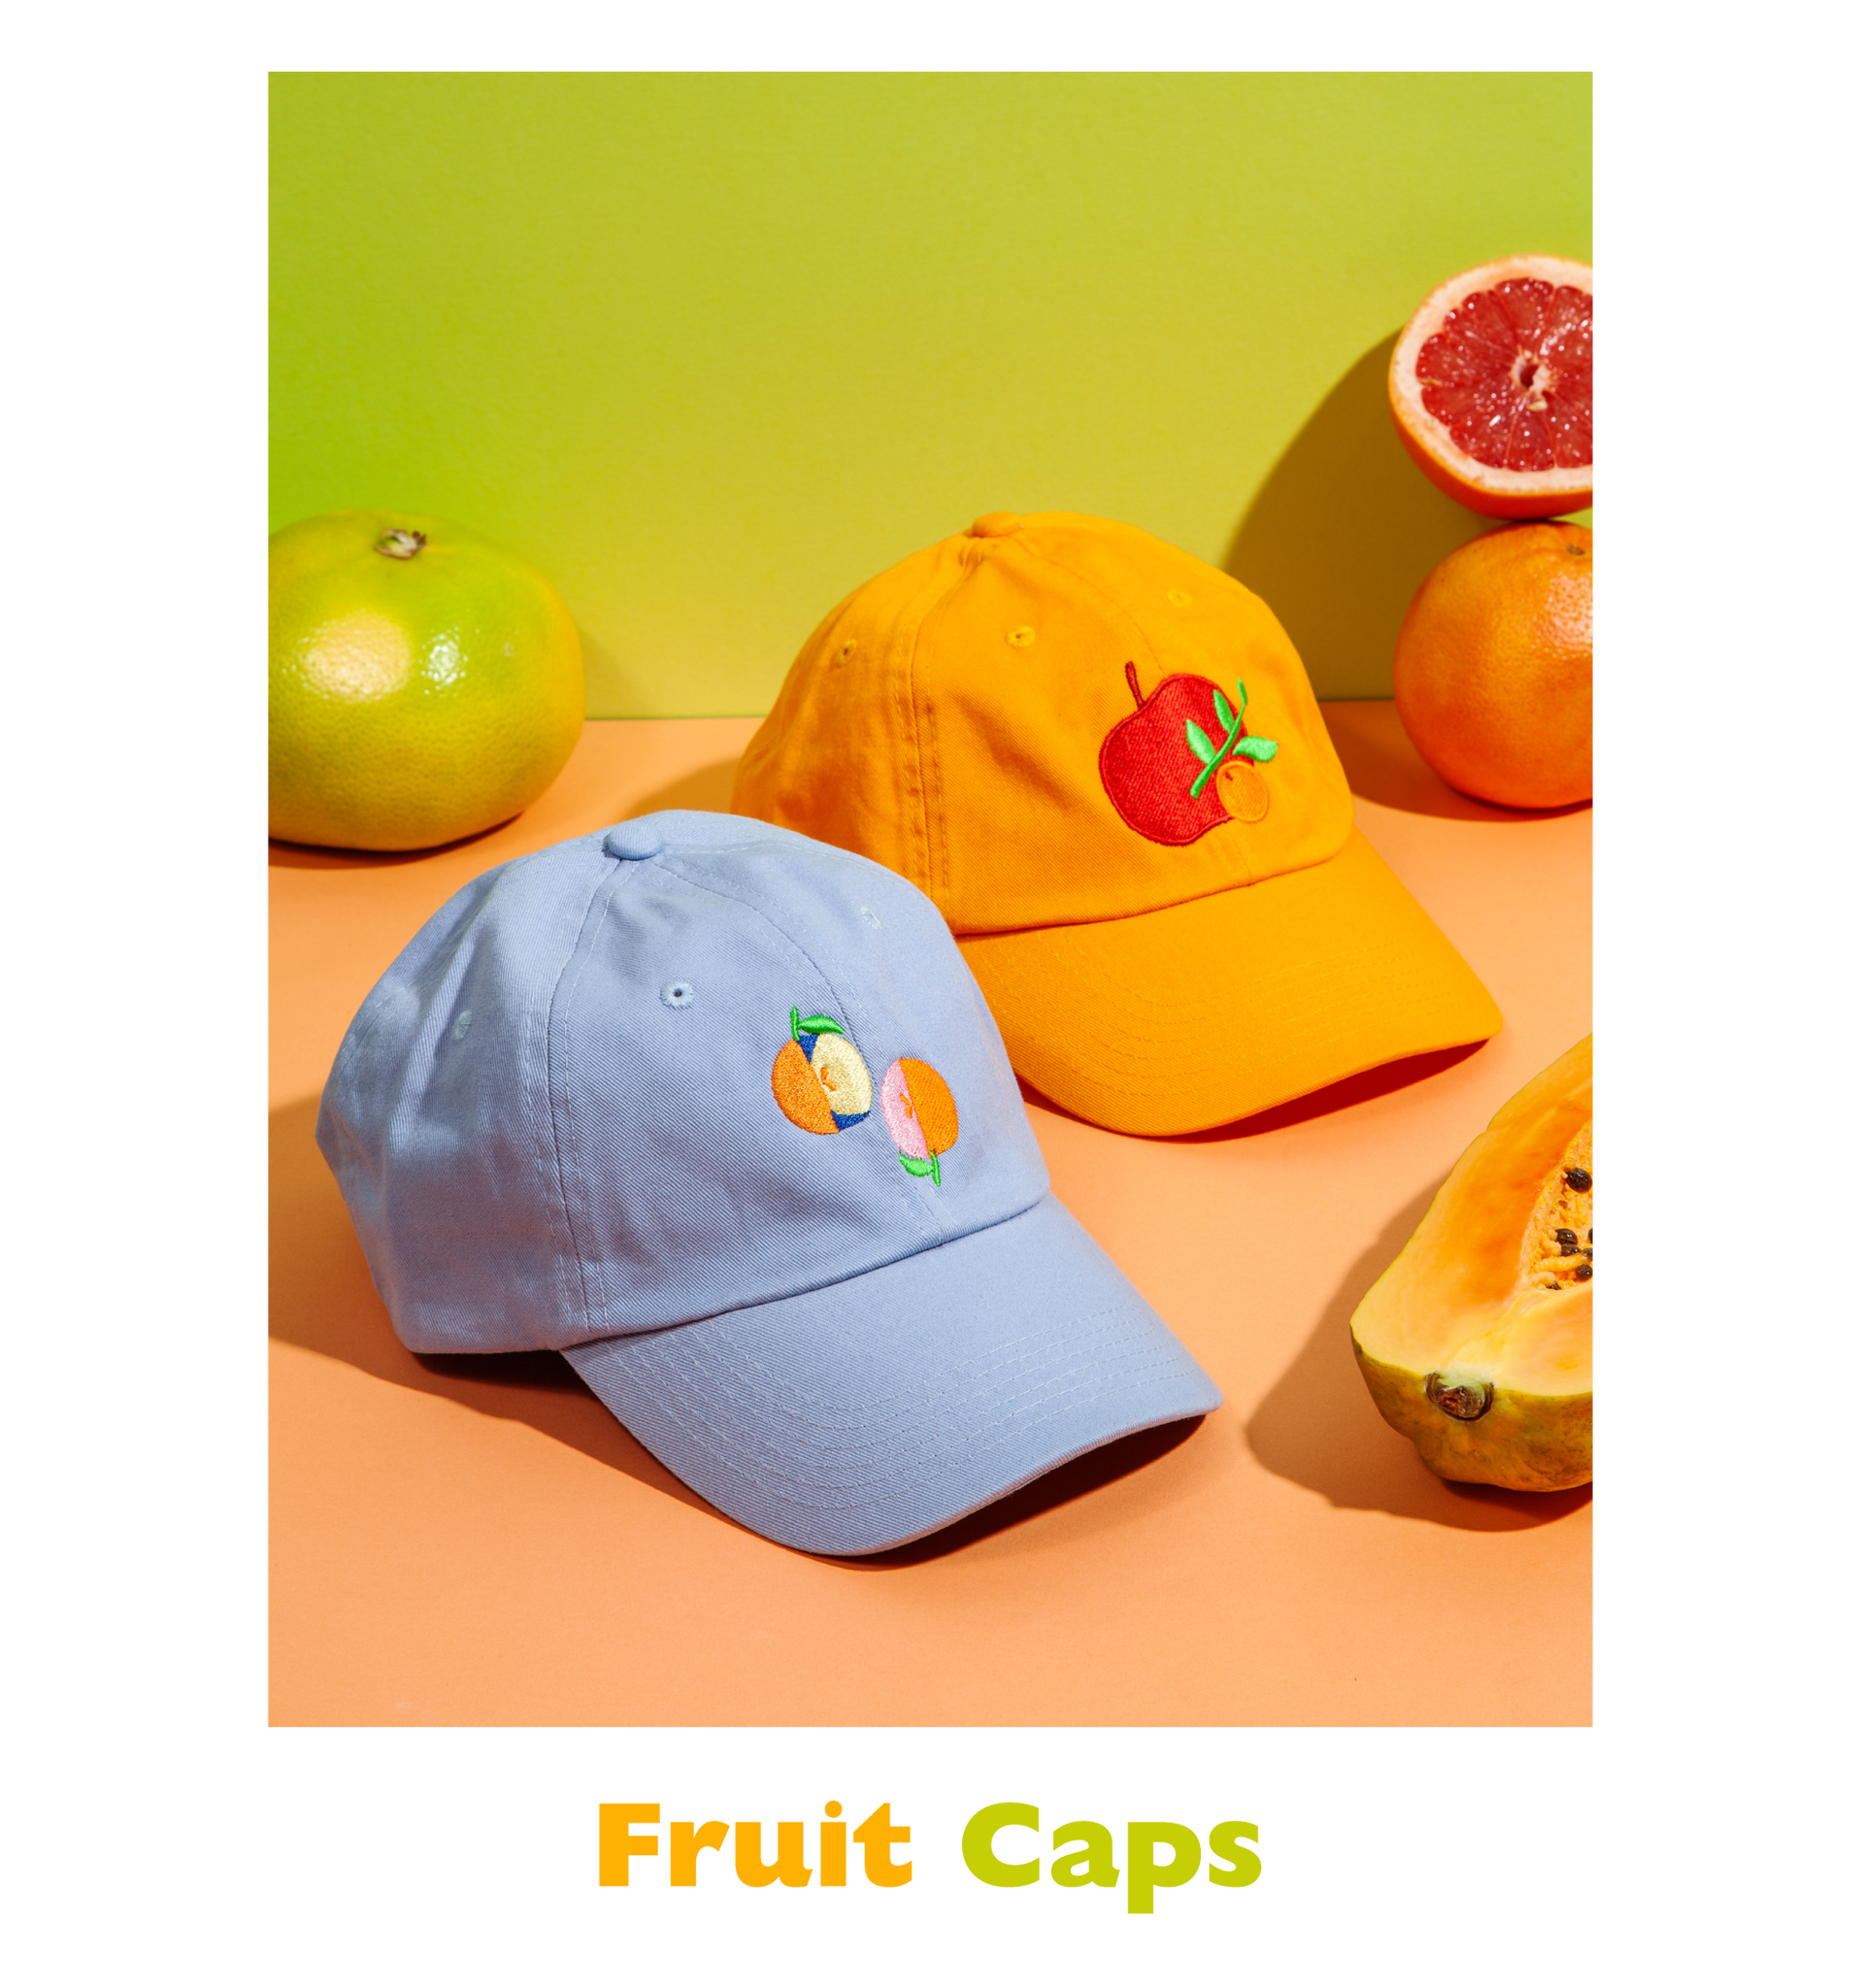 Fruit embroidered caps